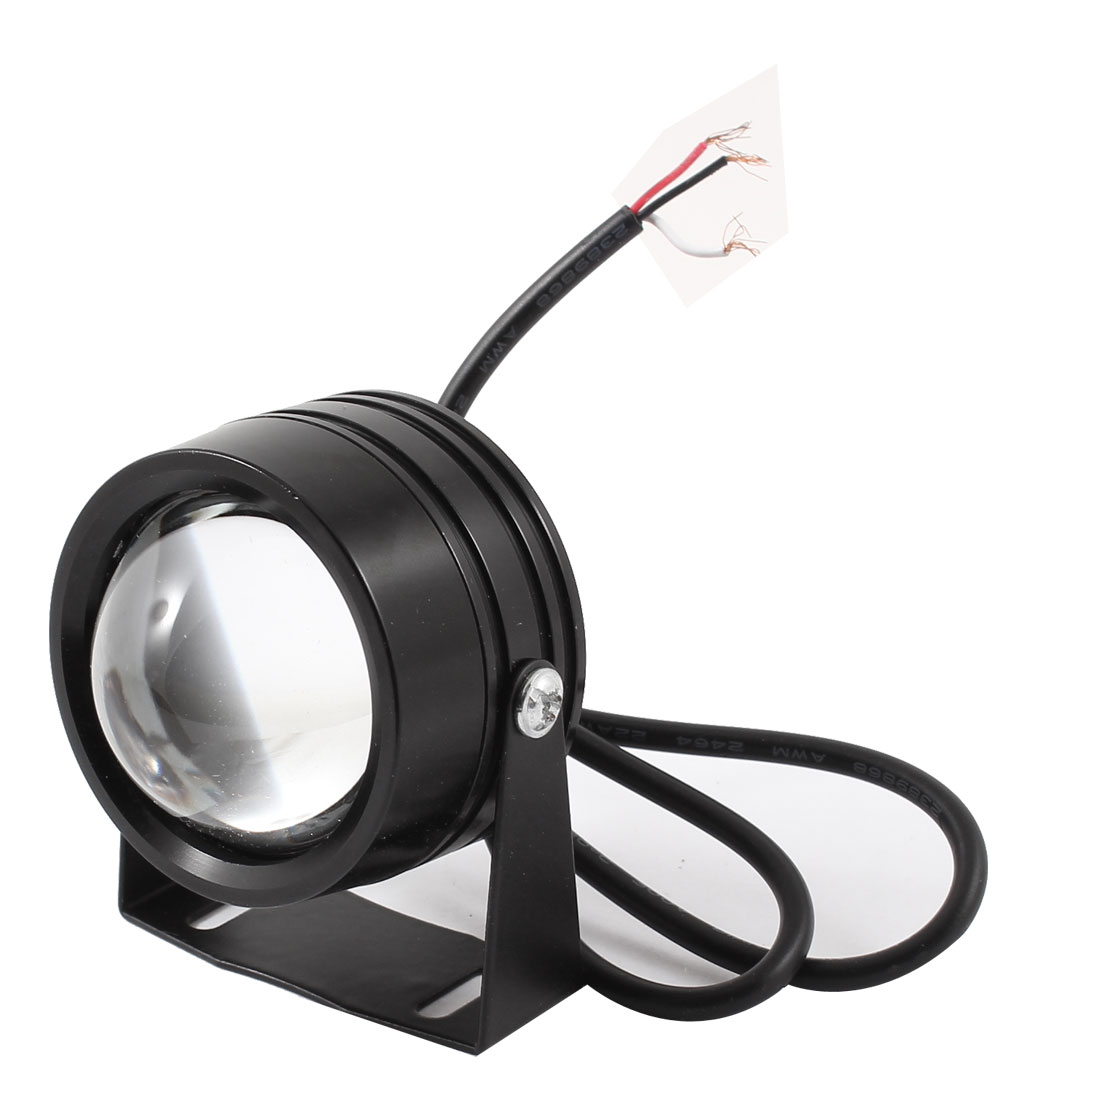 Black Metal Shell White LED Spotlight Lamp Decorative Lamp 12V for Autocycle